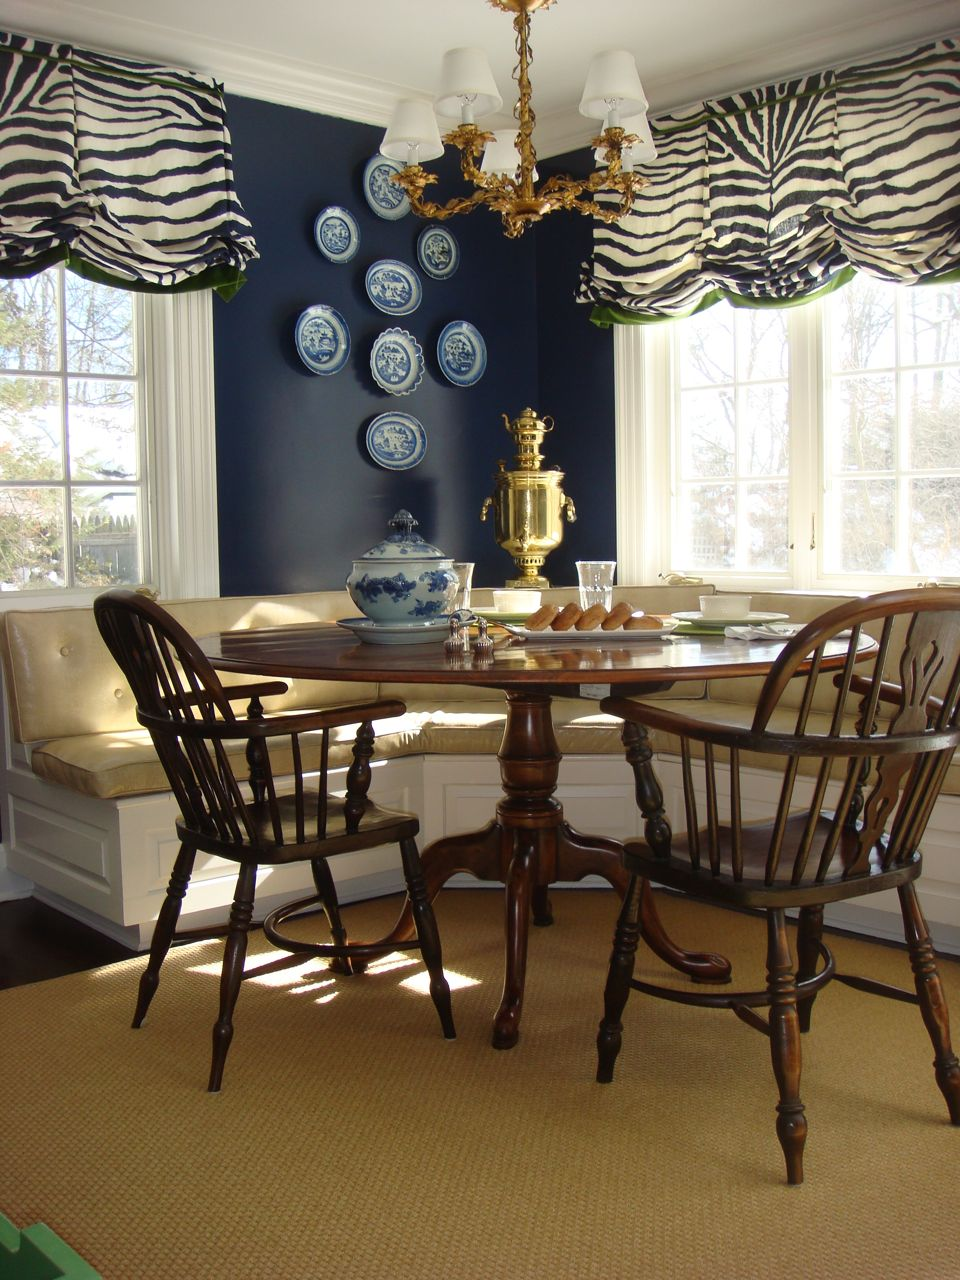 I did this for a client with little ones...the banquette is wipeable snake skin! lesliemaydesigns.com